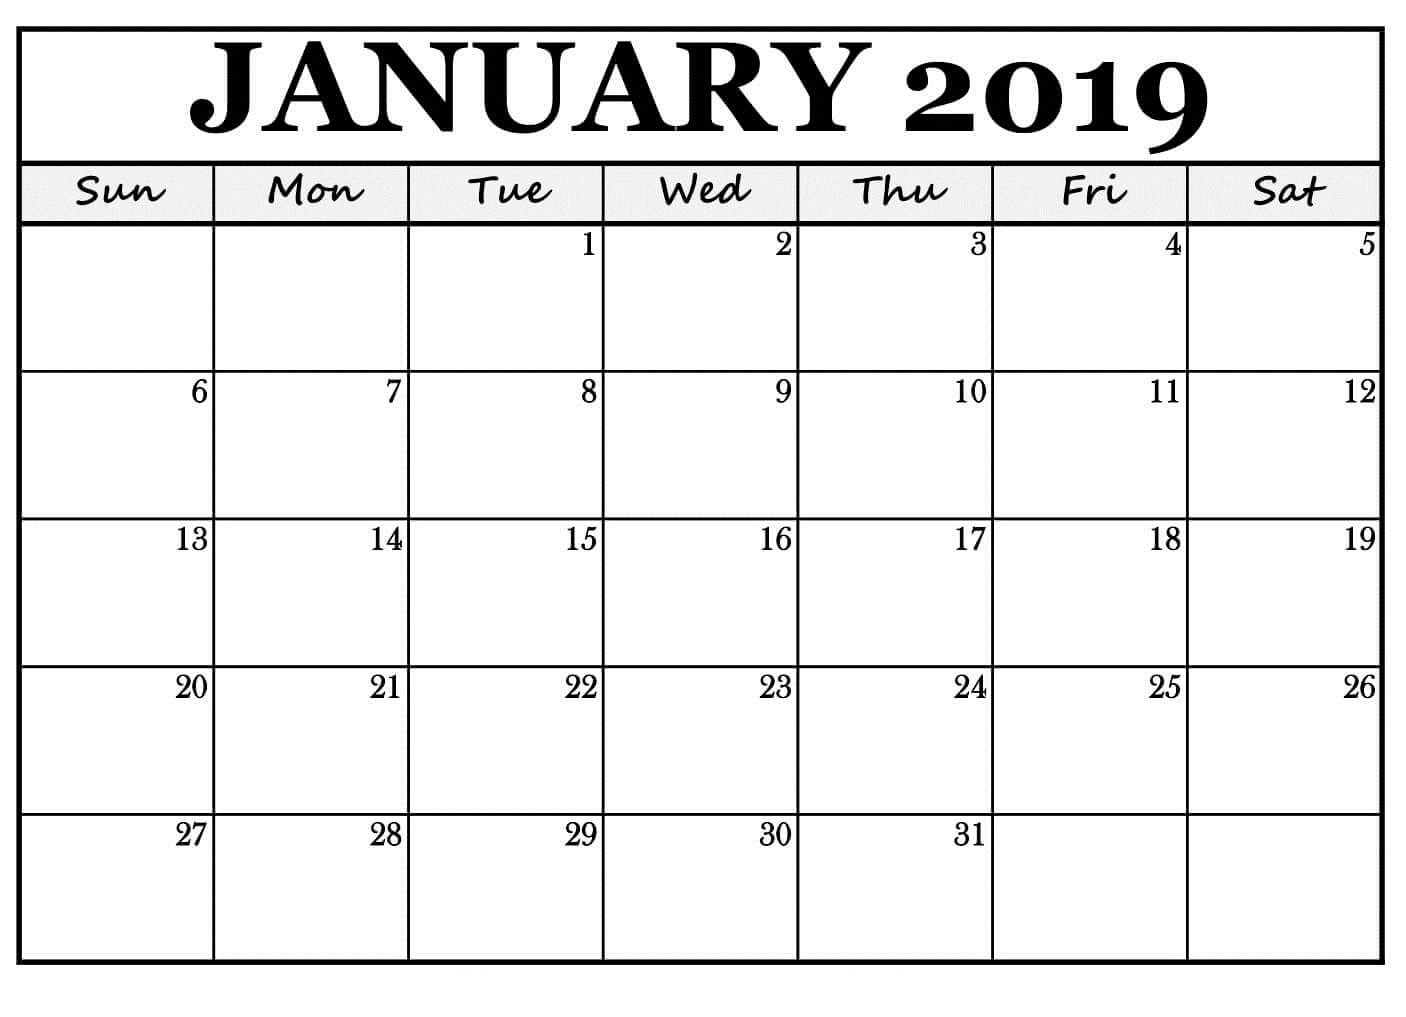 Blank January 2019 Customize Calendar Word Template Printable